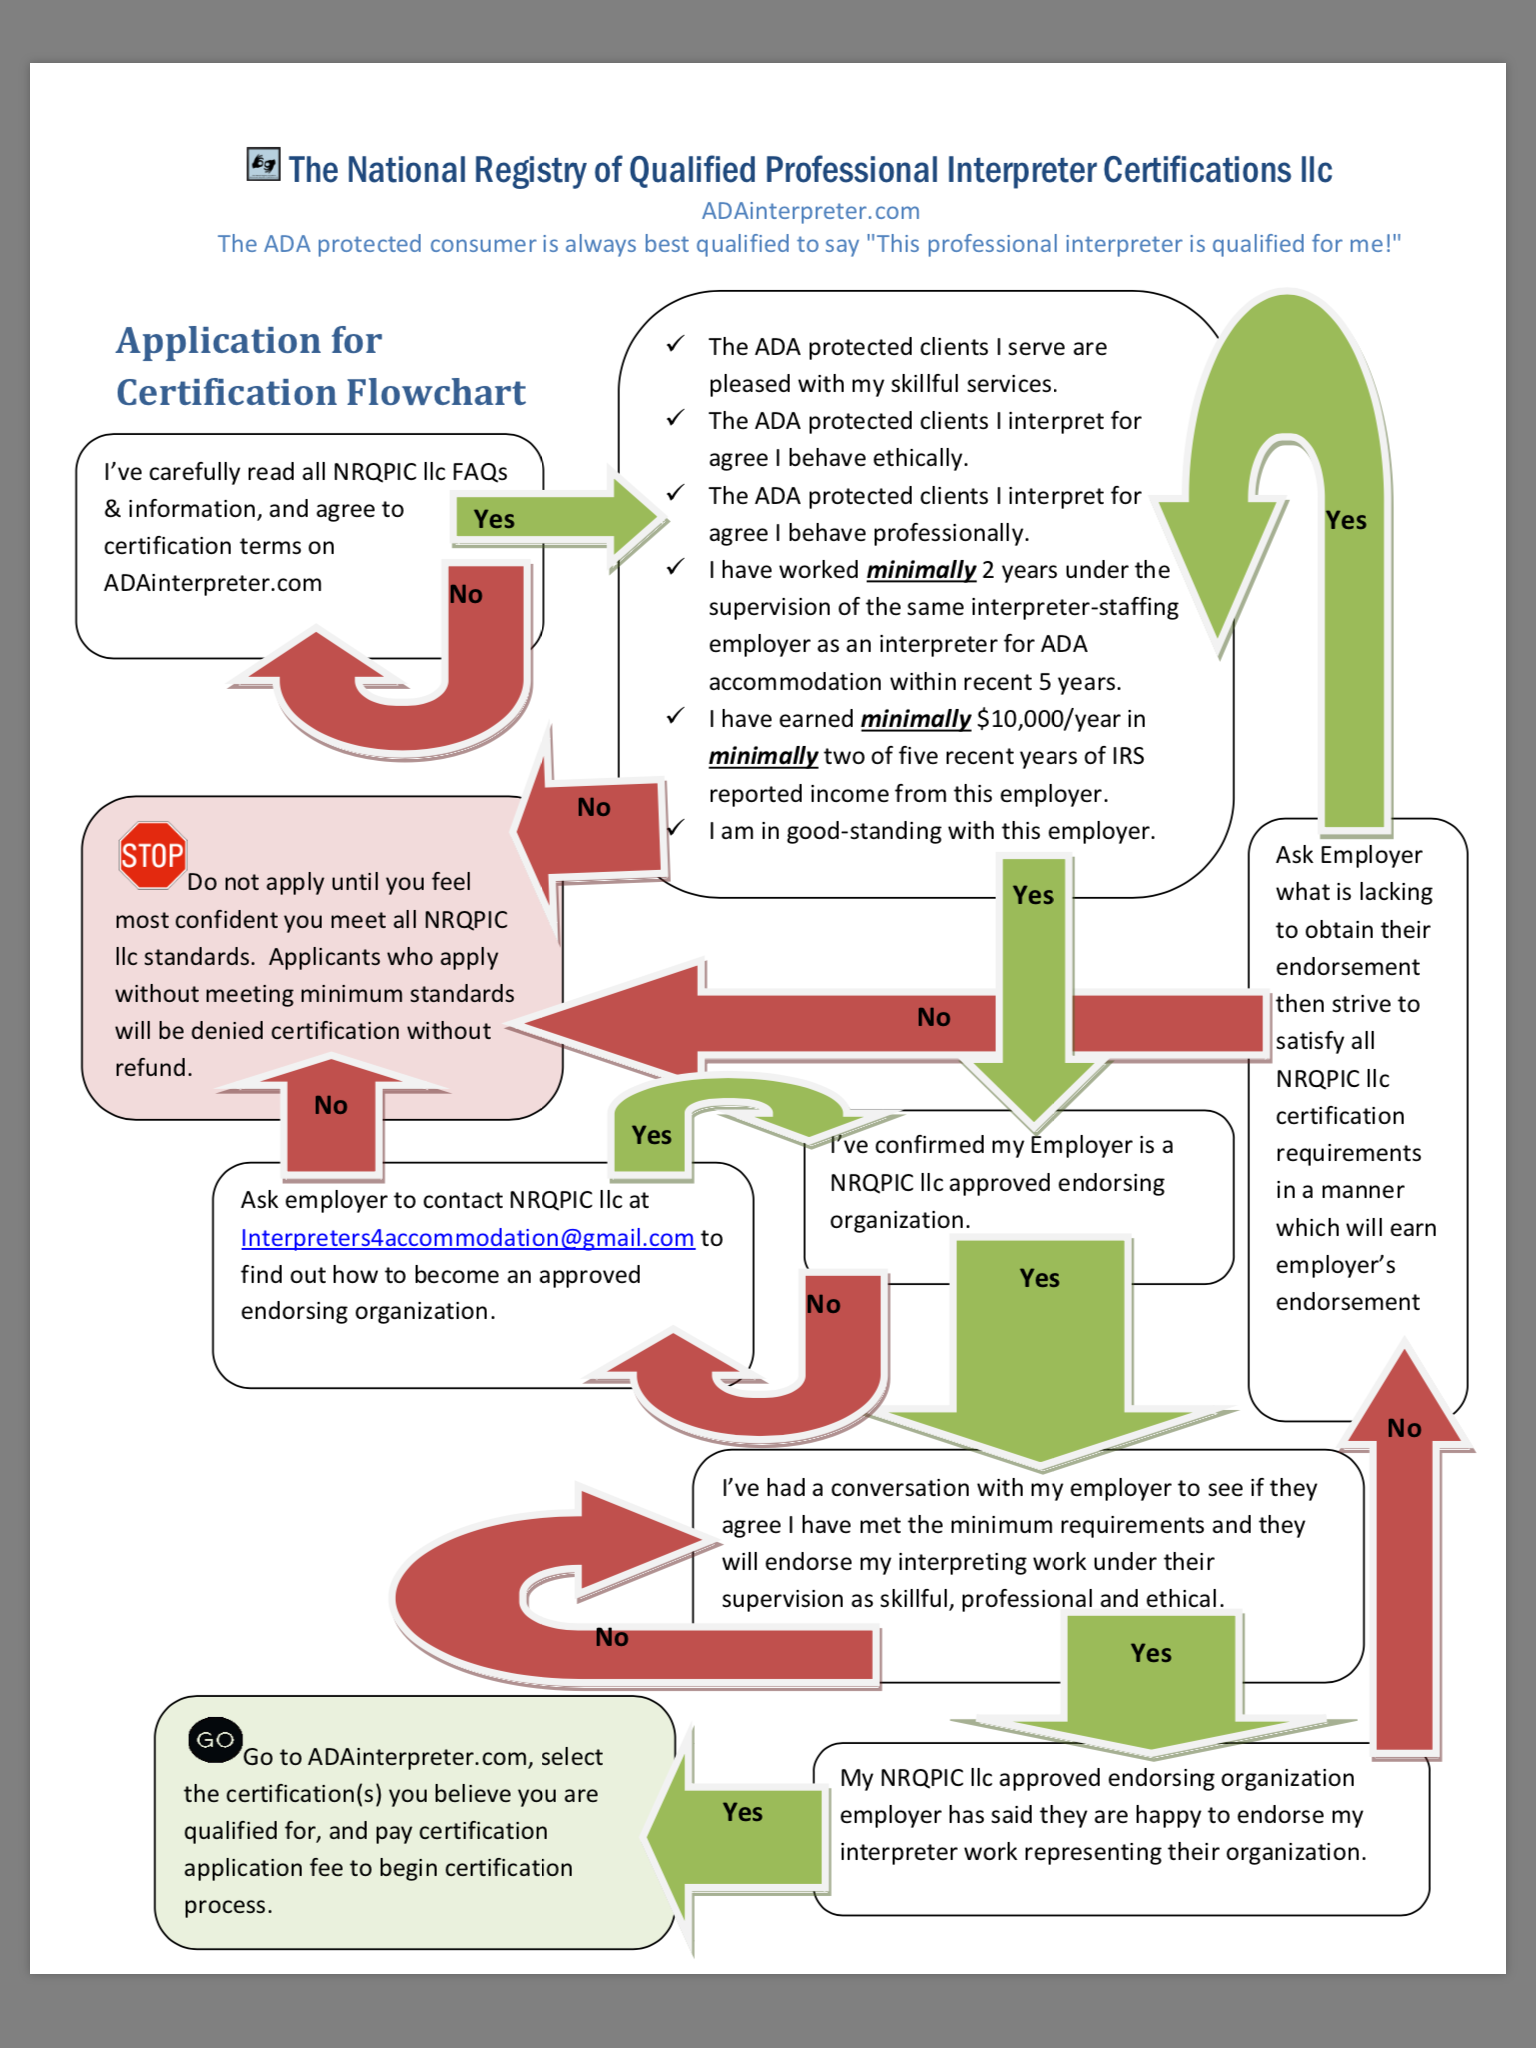 Click Image To Enlarge And Read About The Recommended Path For Interpreter  Application